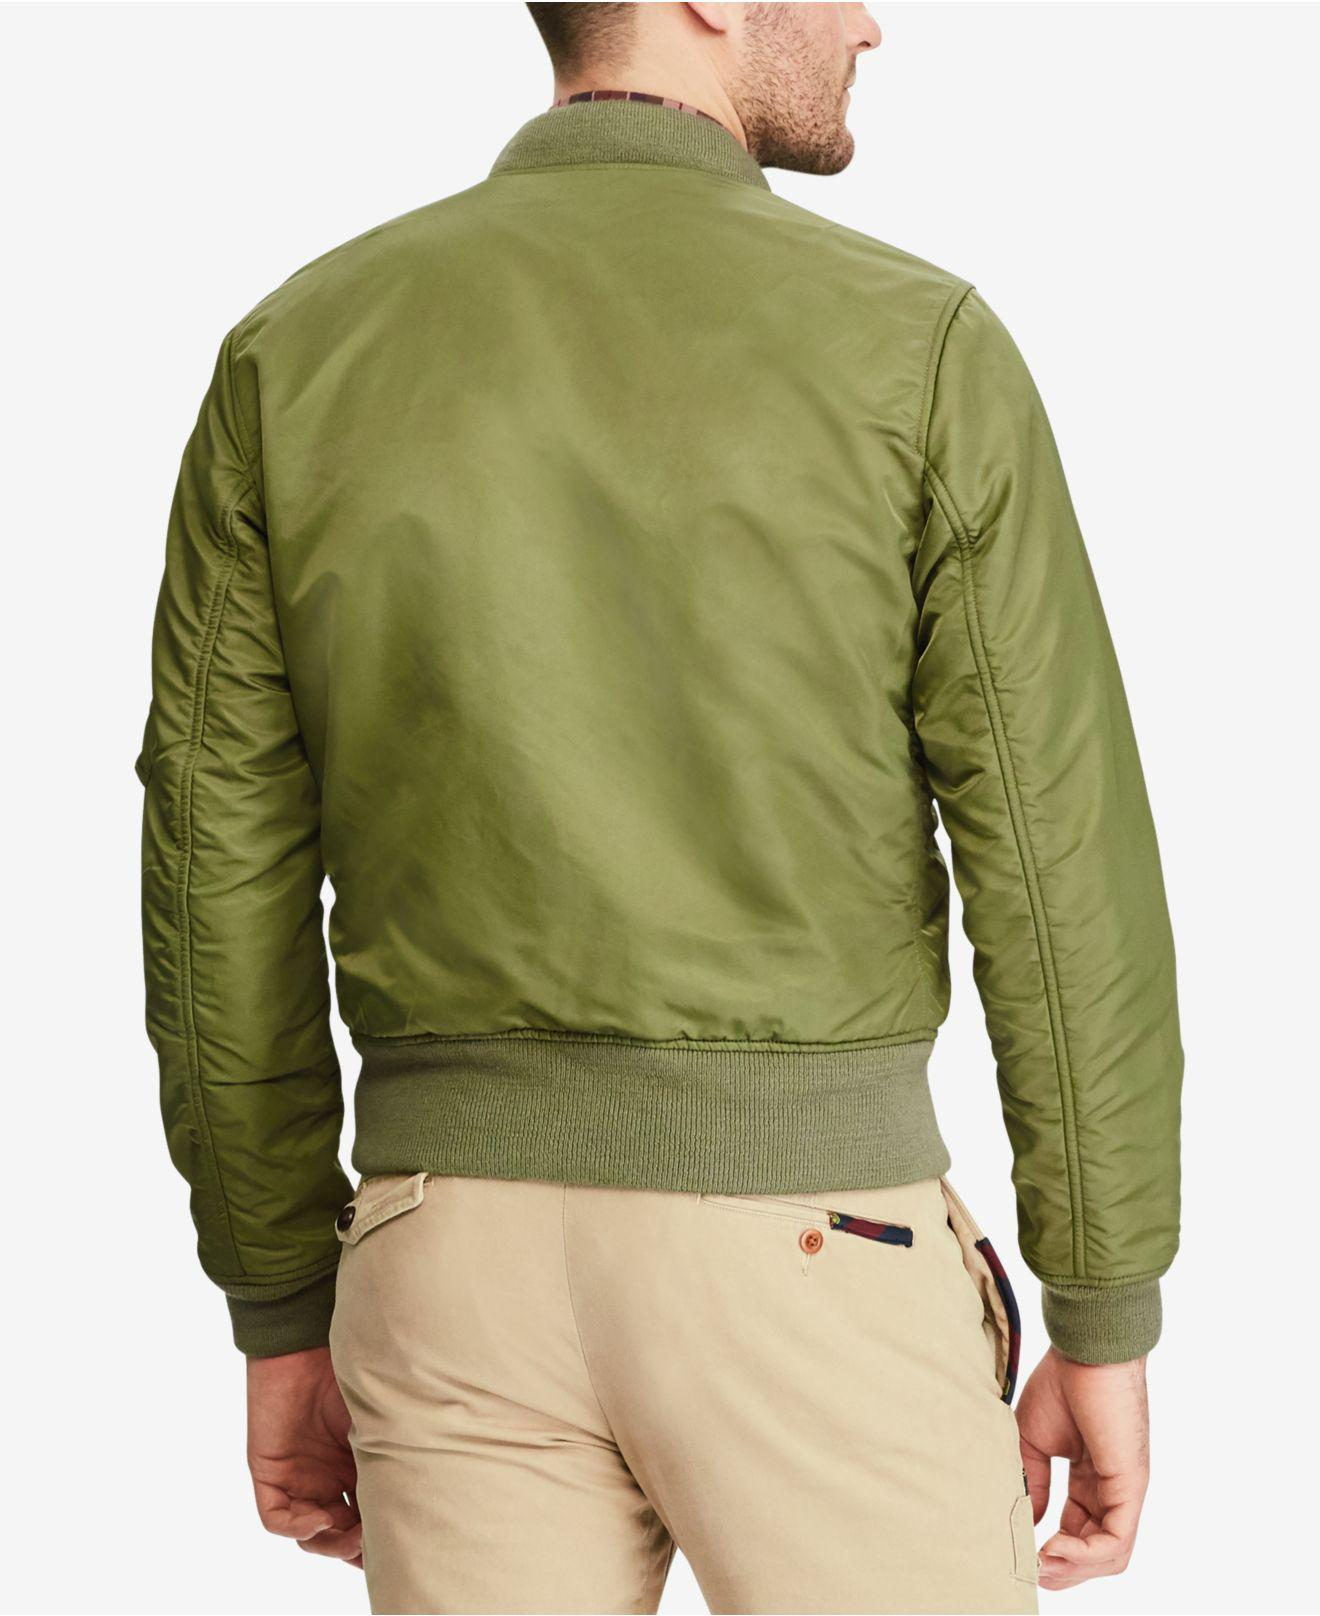 a1f98c3890 Lyst - Polo Ralph Lauren Men s Iconic Ma-1 Bomber Jacket in Green ...